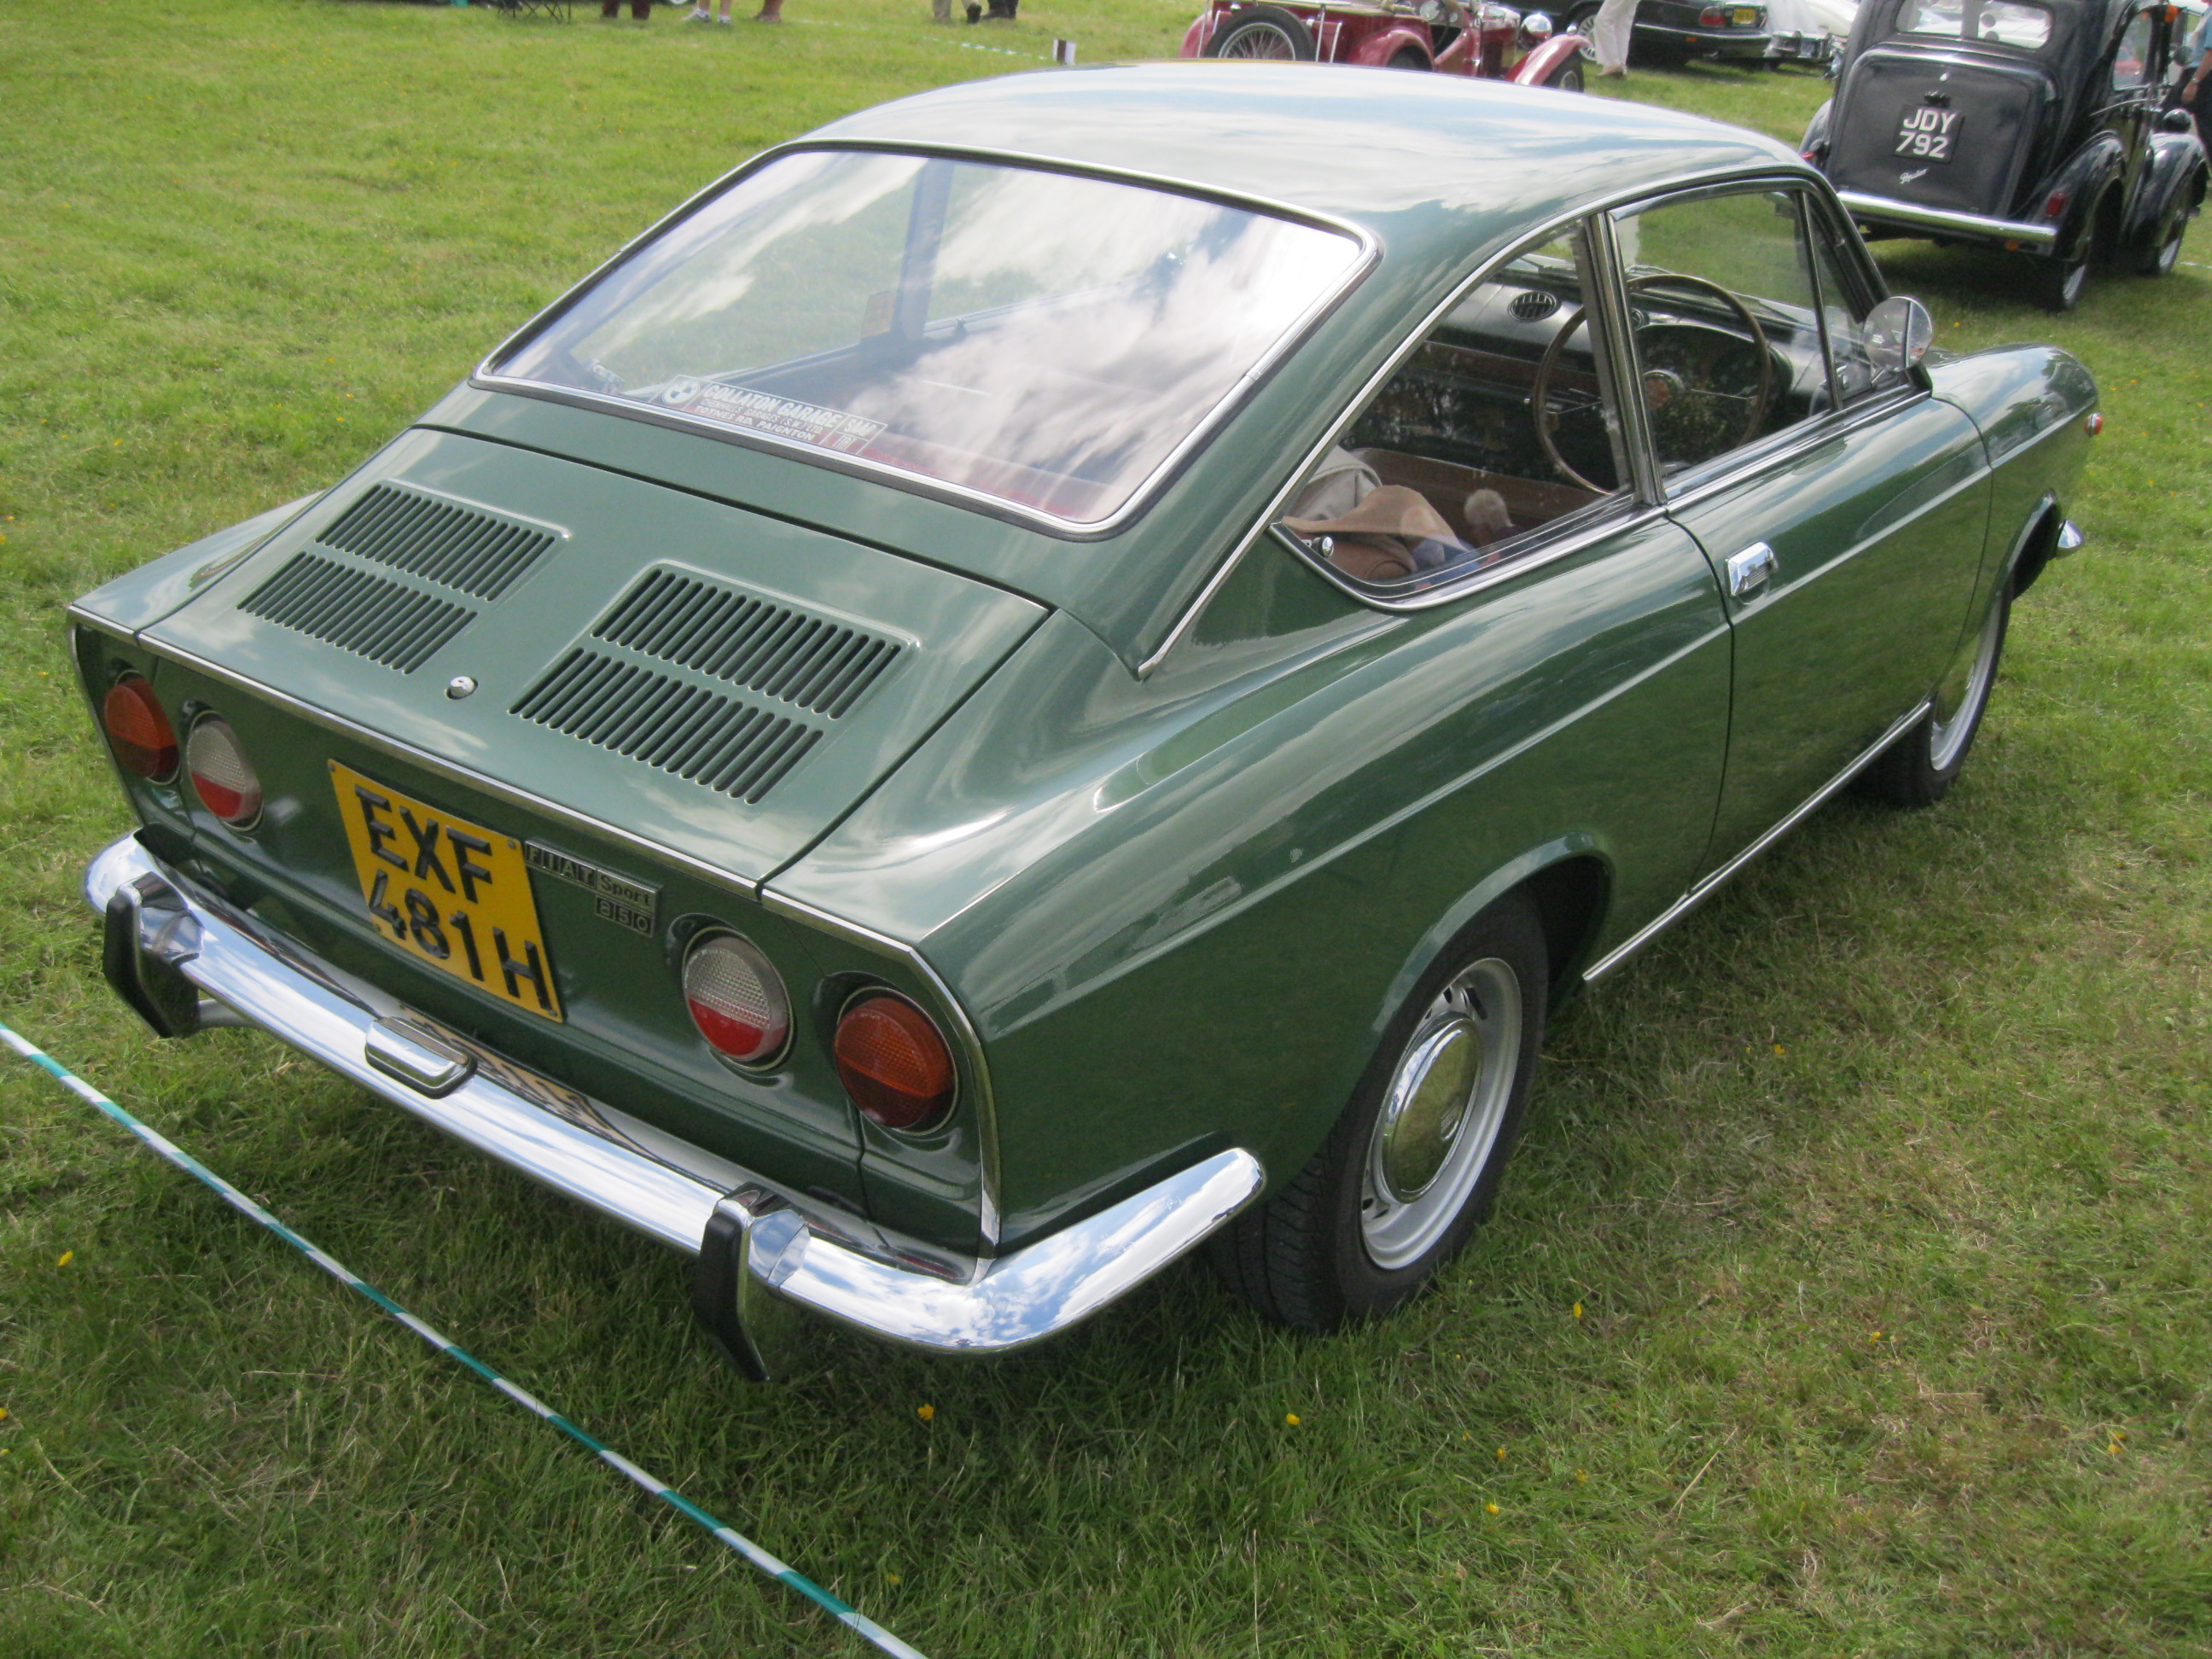 file fiat 850 sport coupe 1969 9019266264 jpg wikimedia commons. Black Bedroom Furniture Sets. Home Design Ideas